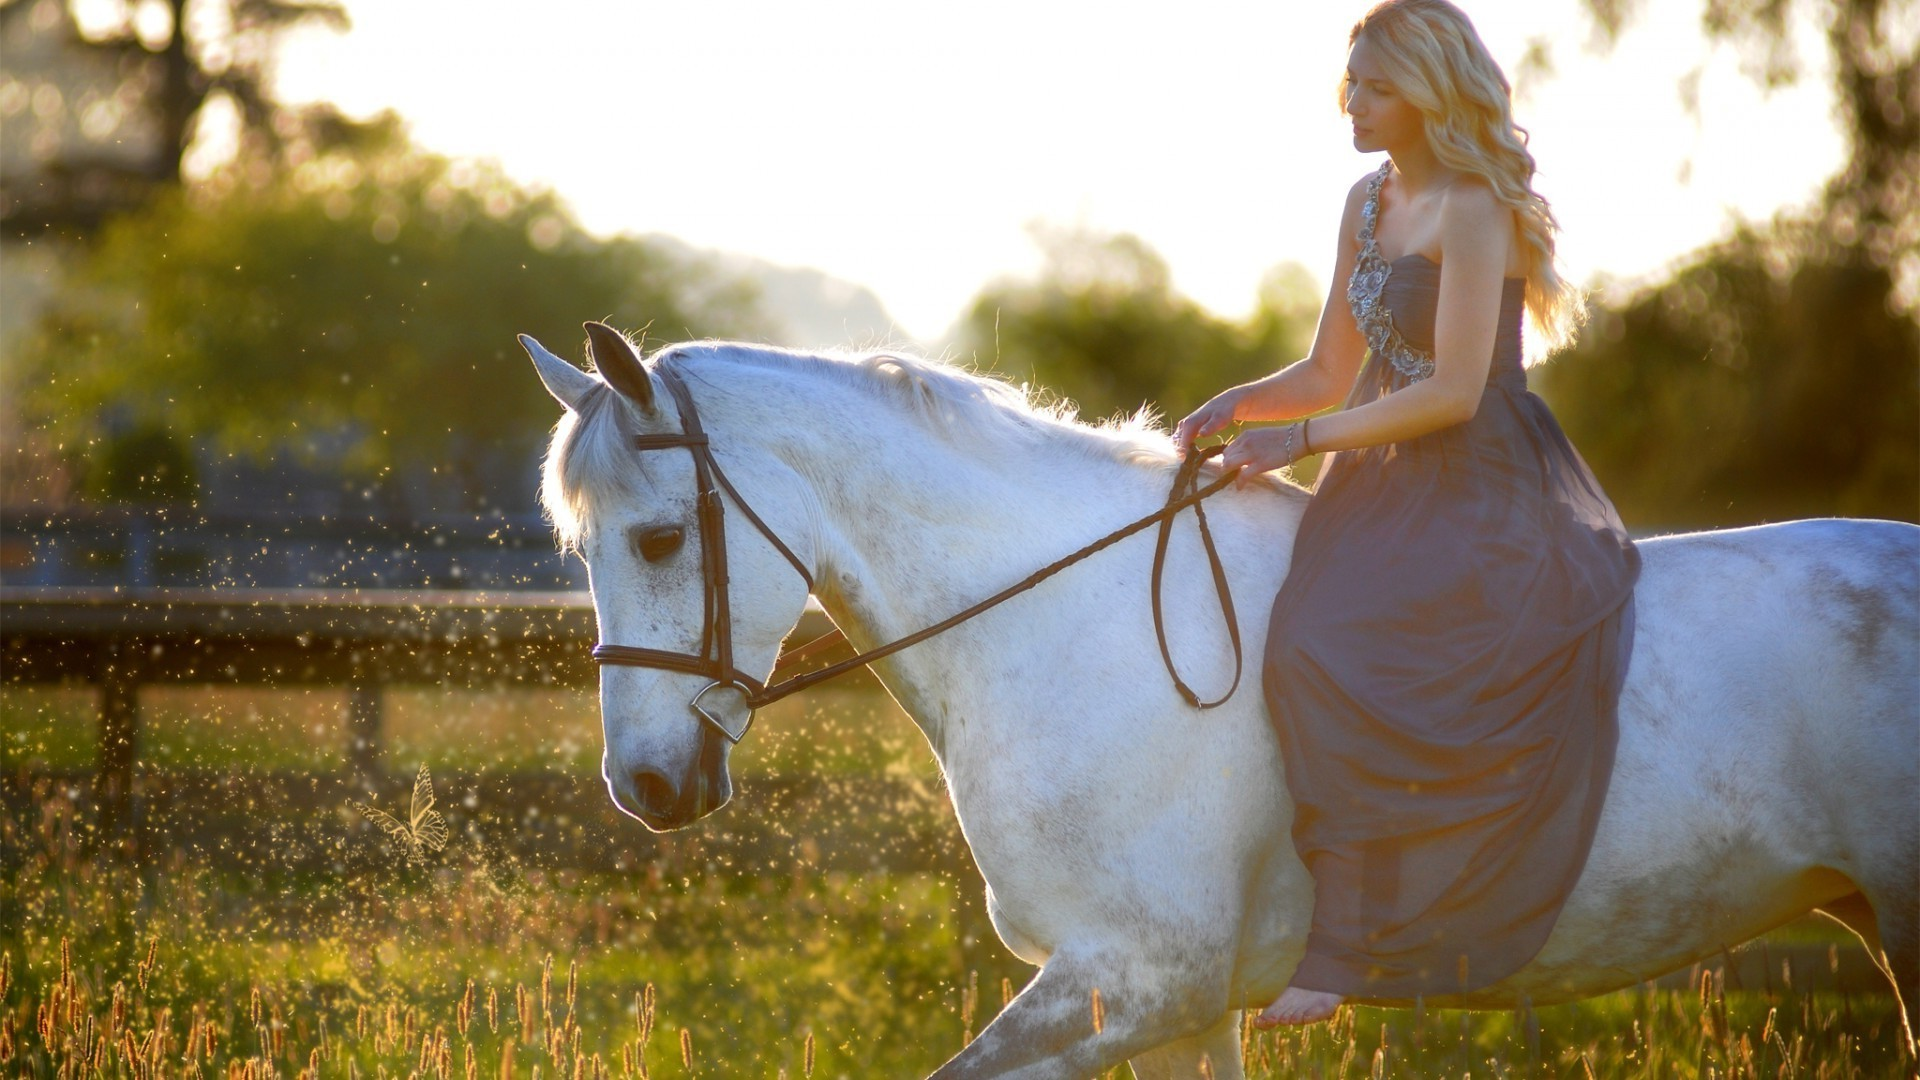 with animals one outdoors nature grass happiness horse cavalry mammal beautiful leisure summer hayfield motion lifestyle enjoyment woman love sitting girl blur